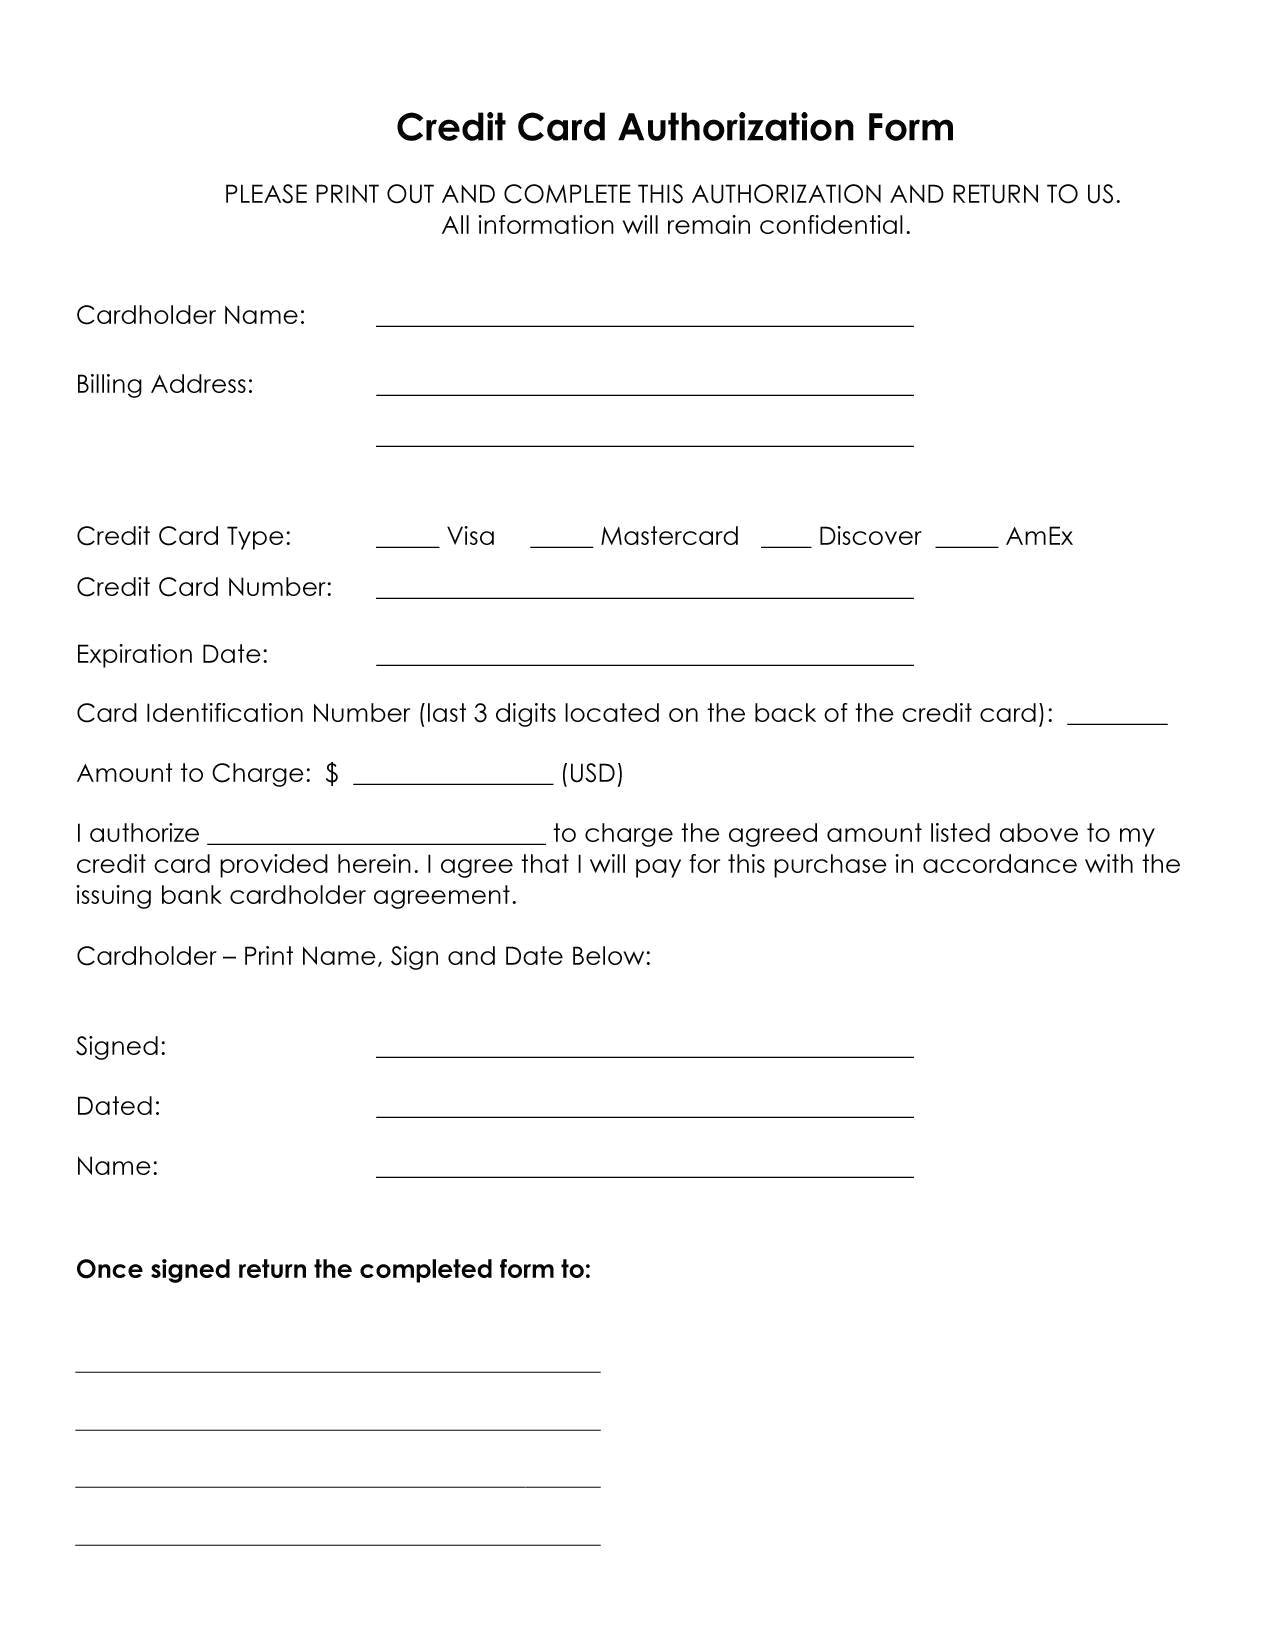 Credit Card Authorisation form Template Australia 25 Credit Card Authorization form Template Free Download